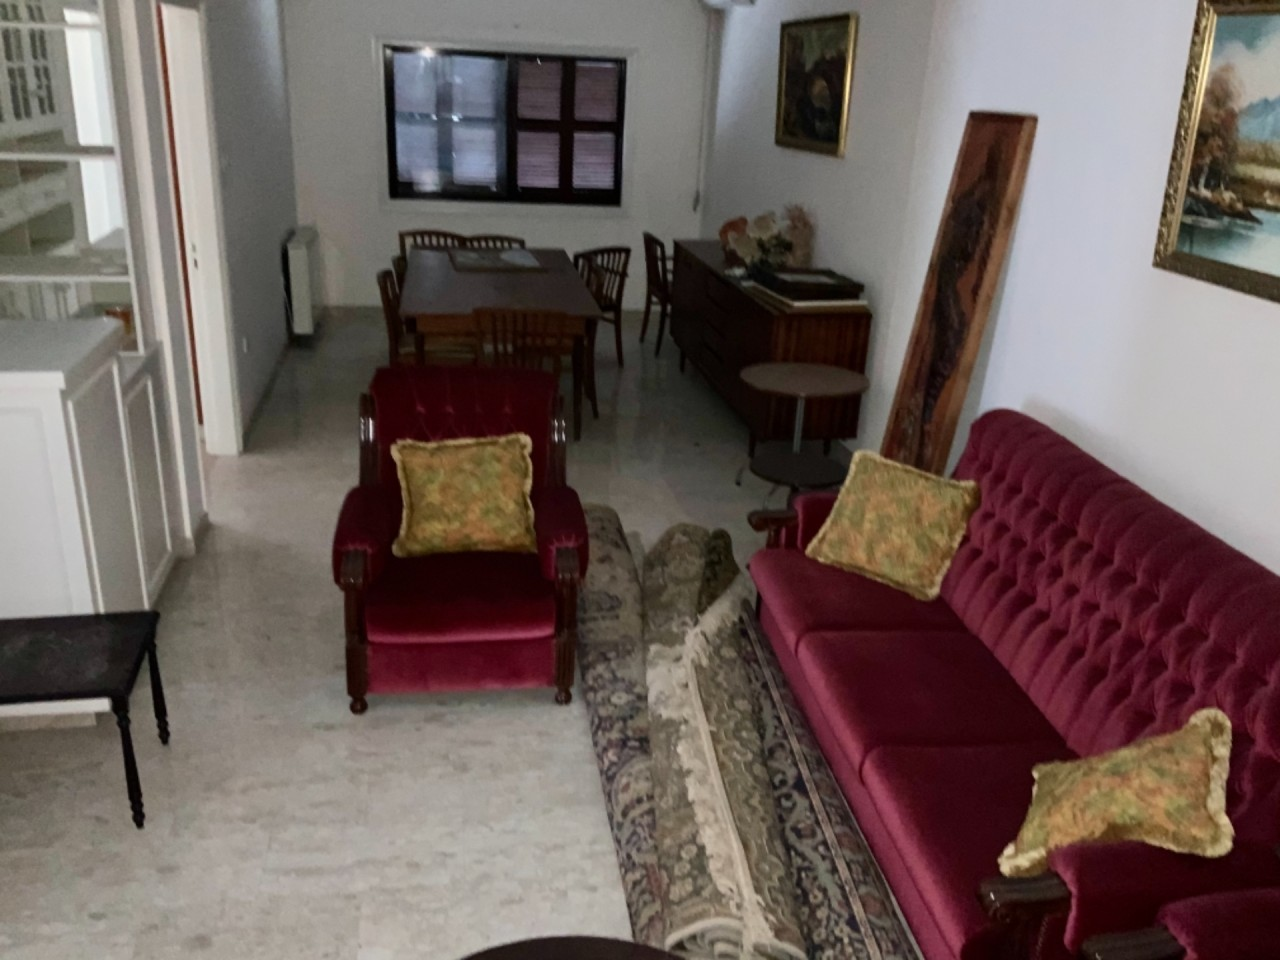 House (Semi detached) in Dasoupoli, Nicosia for Rent  4 Bedr.....